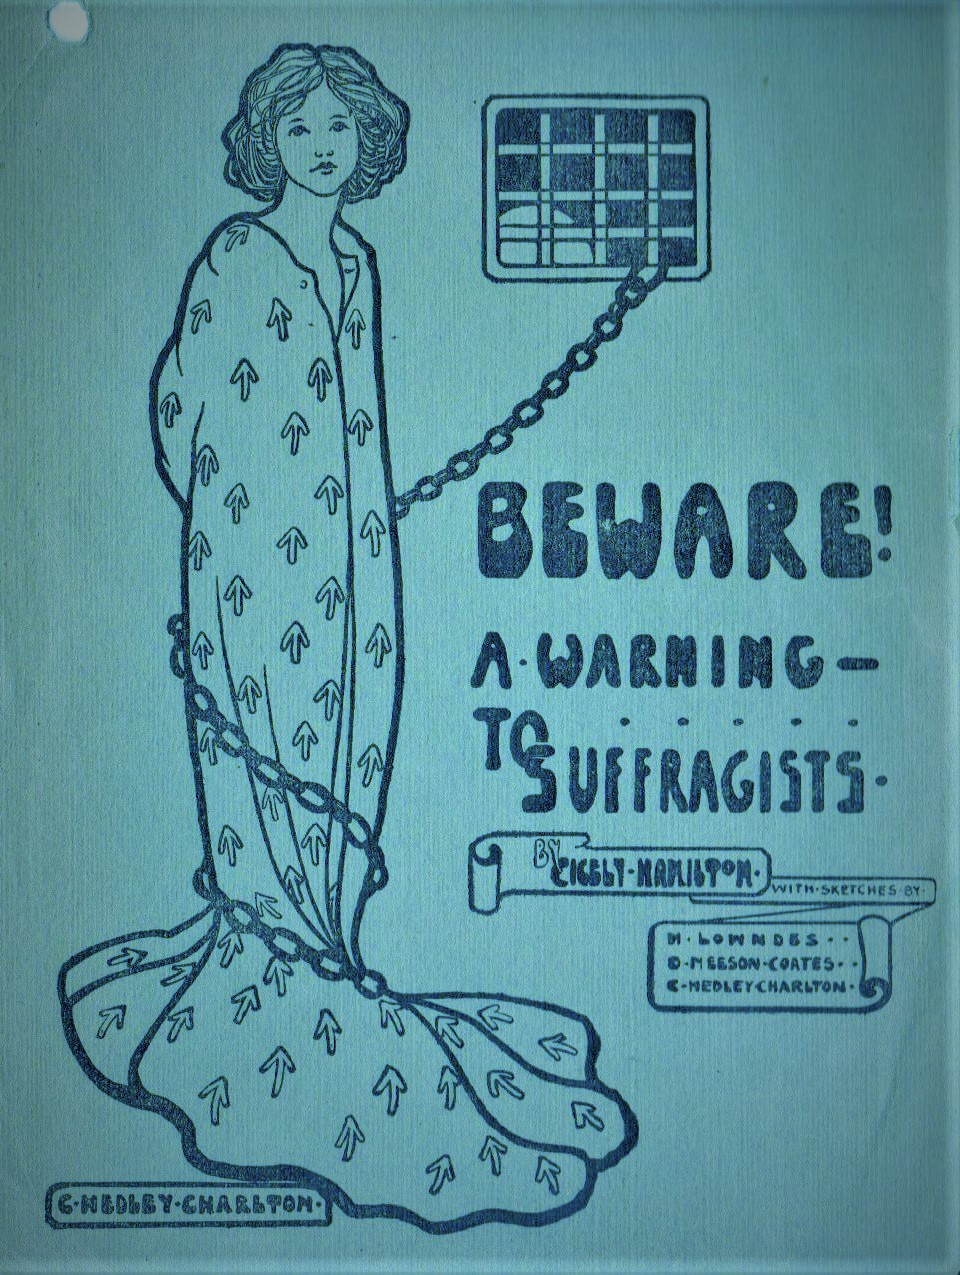 Suffragist Warning Advertisement